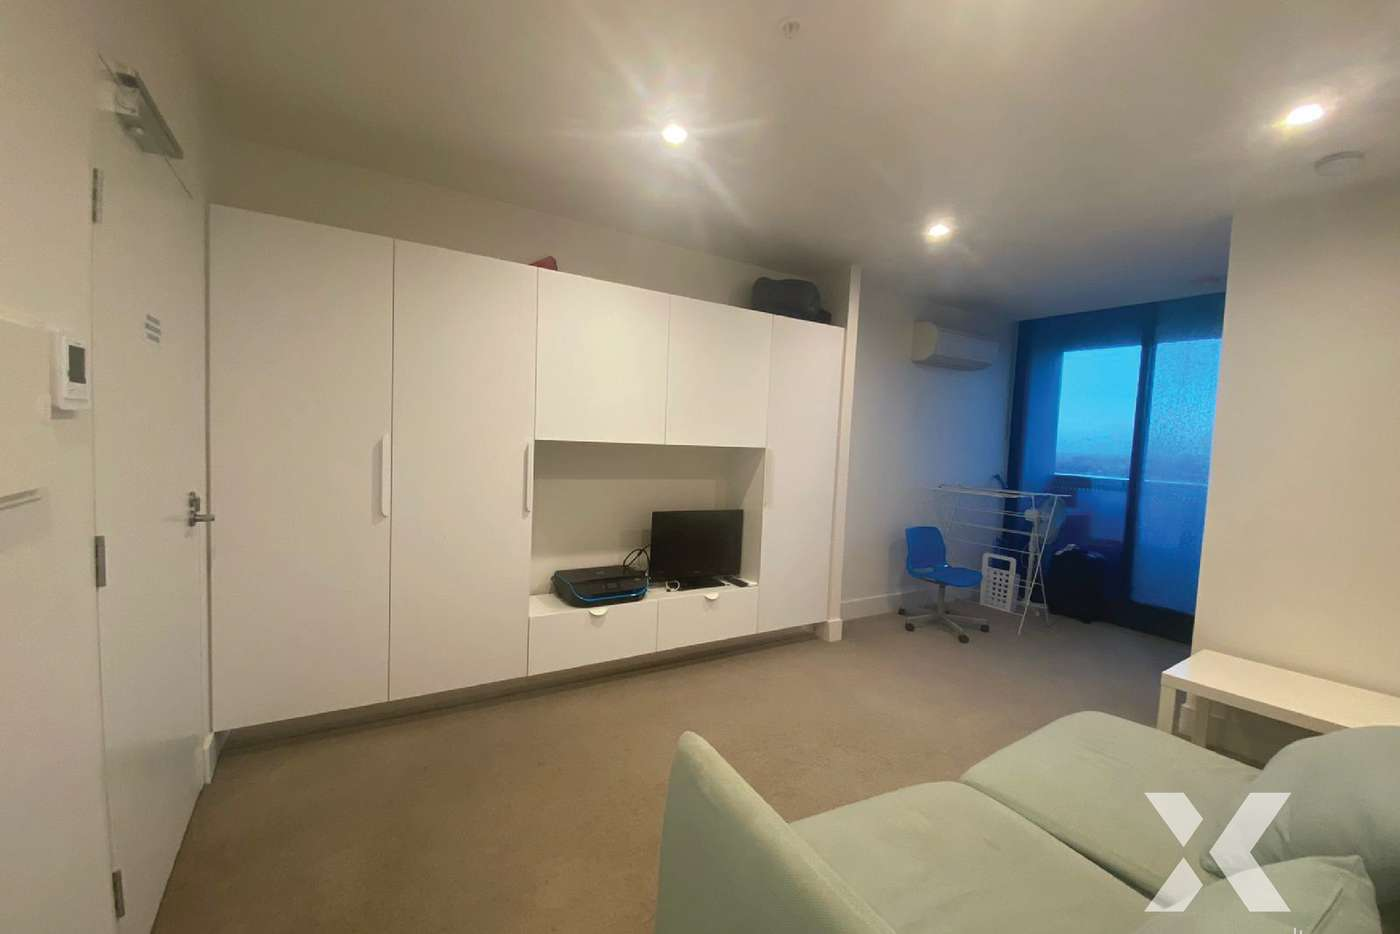 Main view of Homely apartment listing, 1712/500 Elizabeth Street, Melbourne VIC 3000